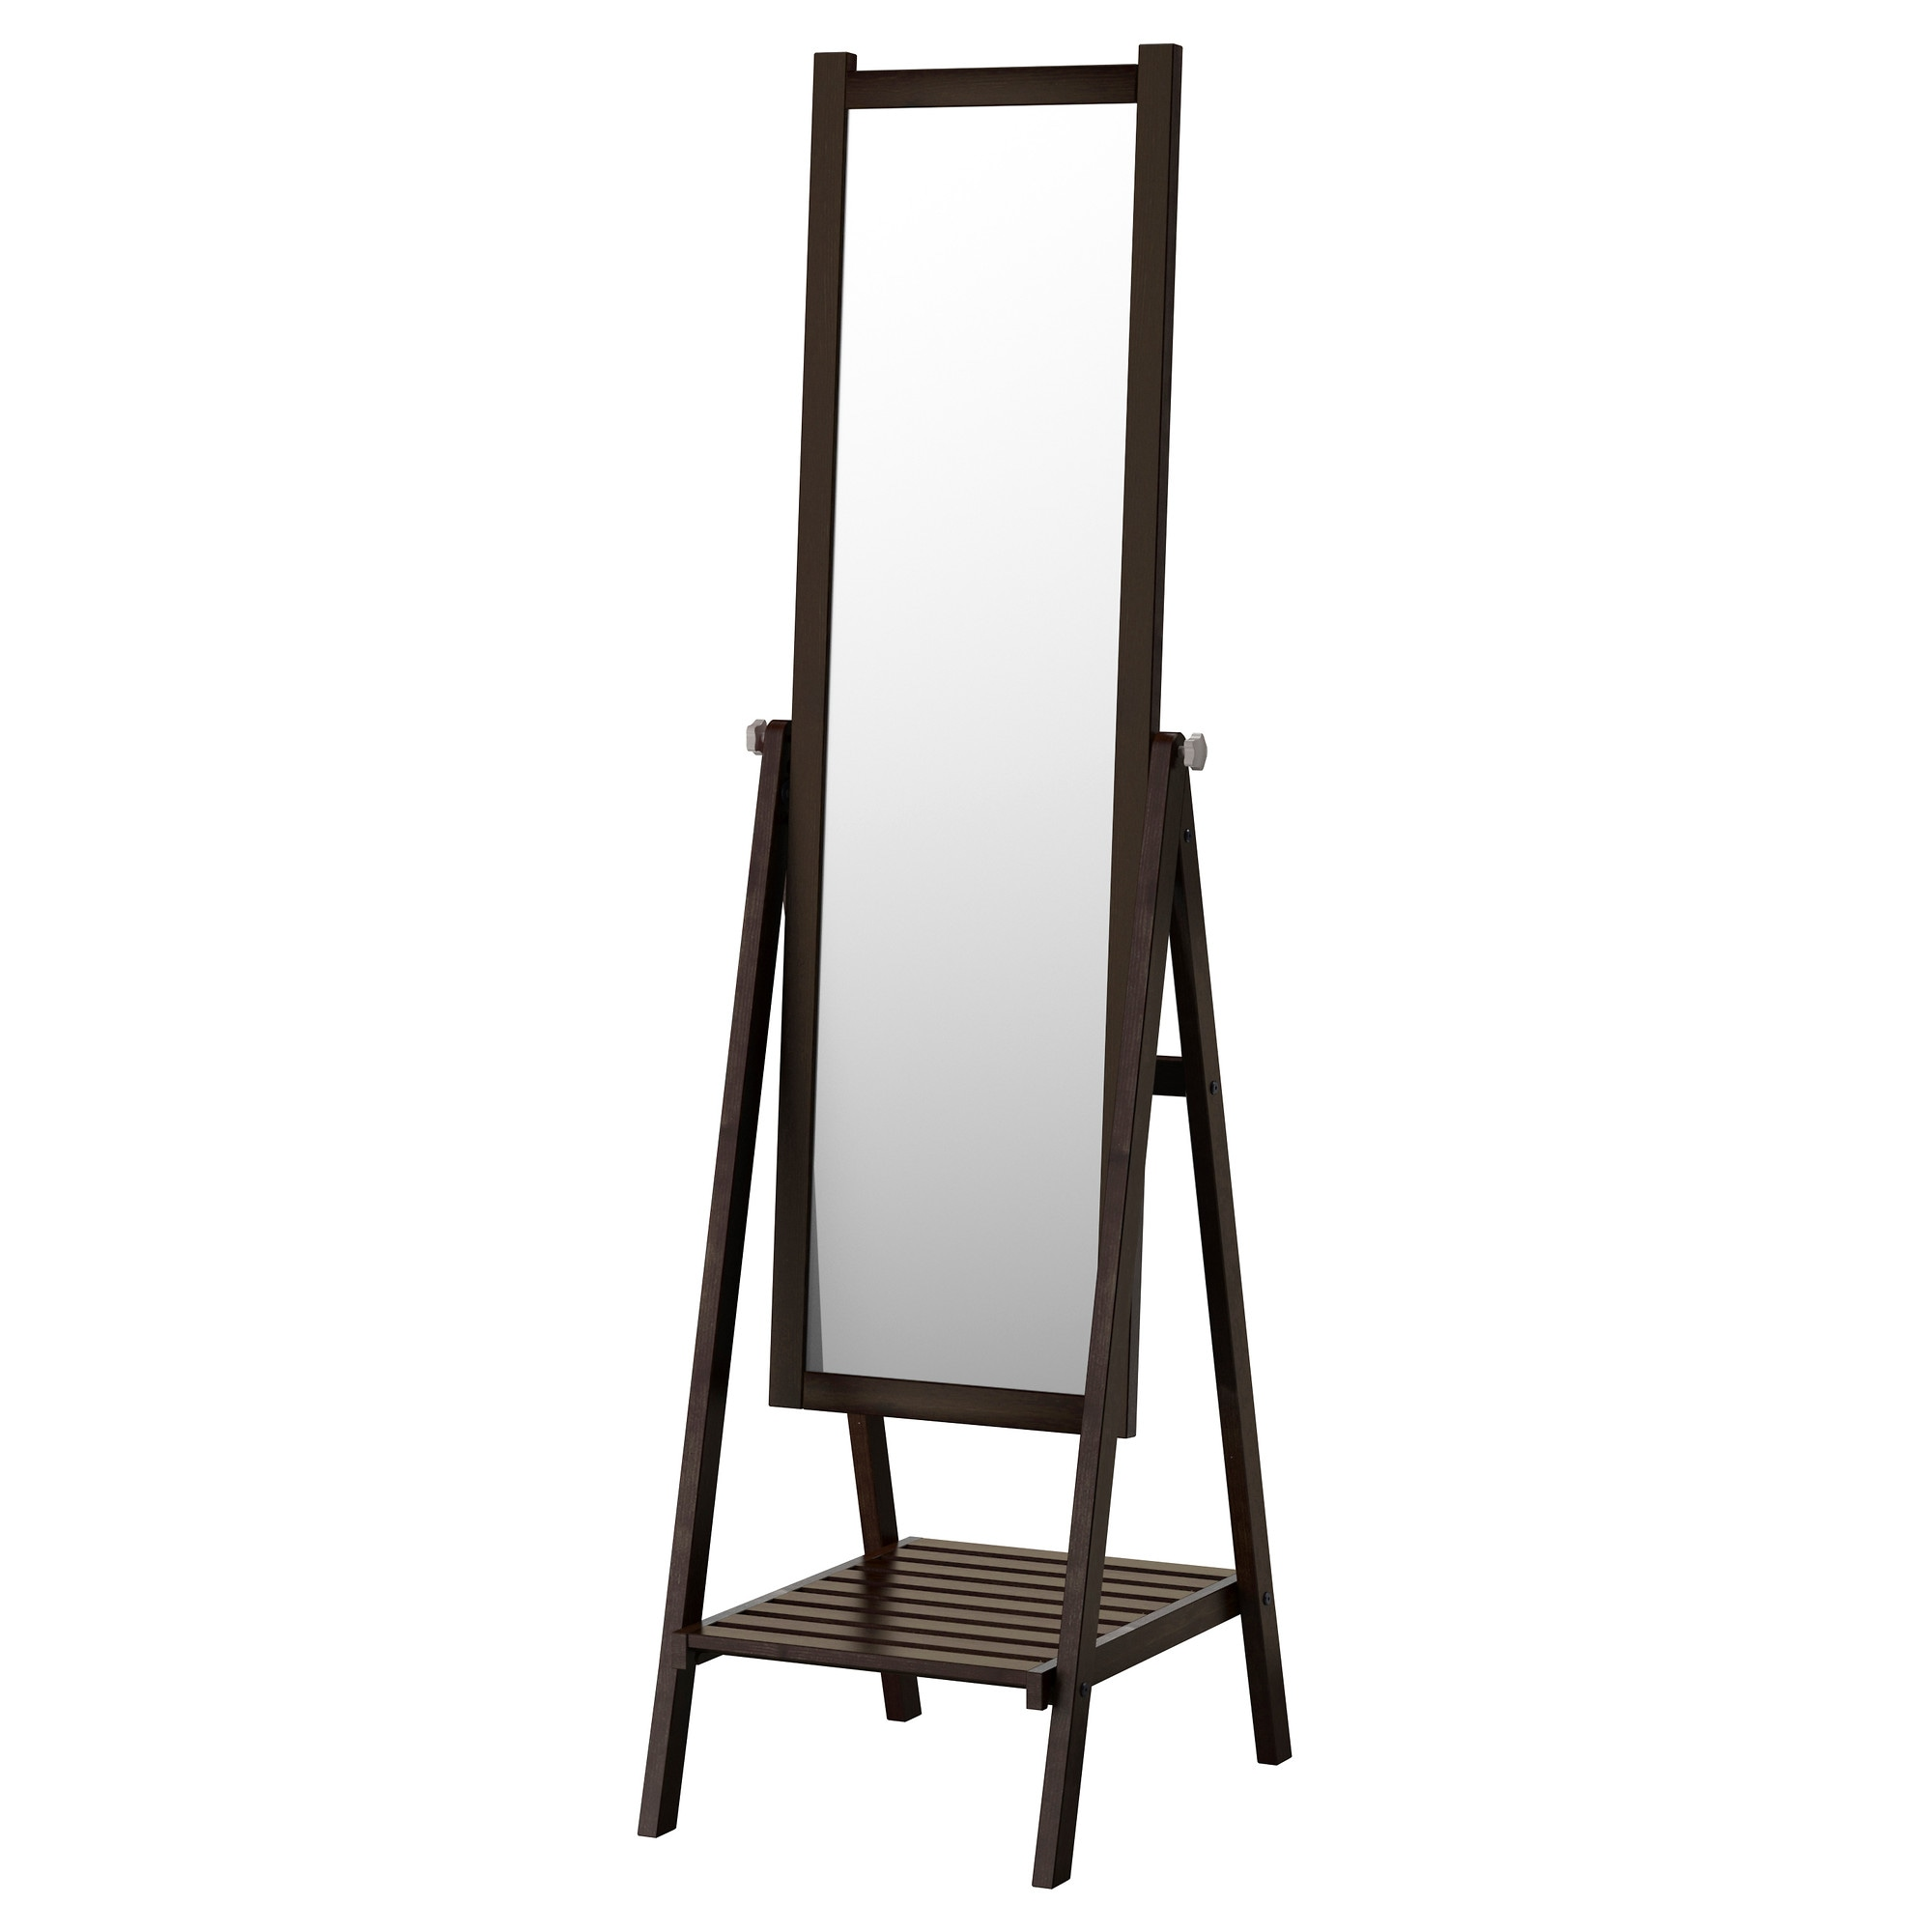 mirrors  floor table  wall mirrors  ikea - isfjorden standing mirror blackbrown stain width    depth